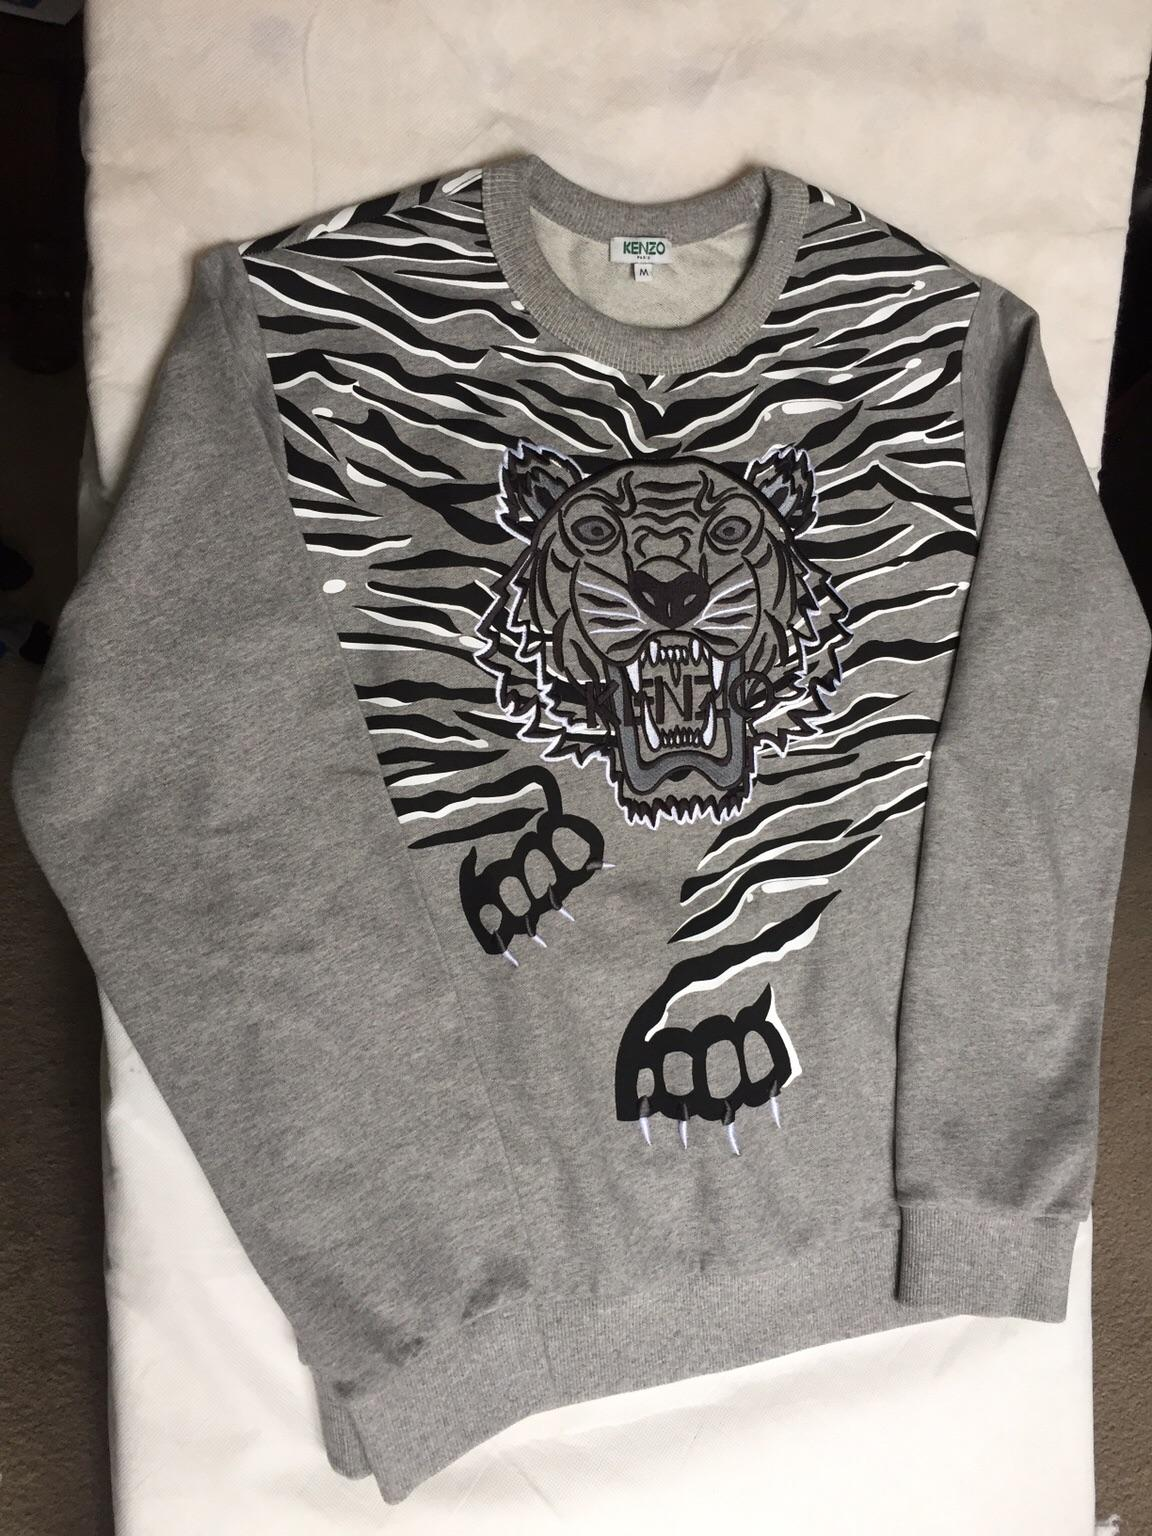 4b73ee52e1 Kenzo Claw Tiger Sweatshirt Jumper New in SE8 Lewisham for £150.00 for sale  - Shpock